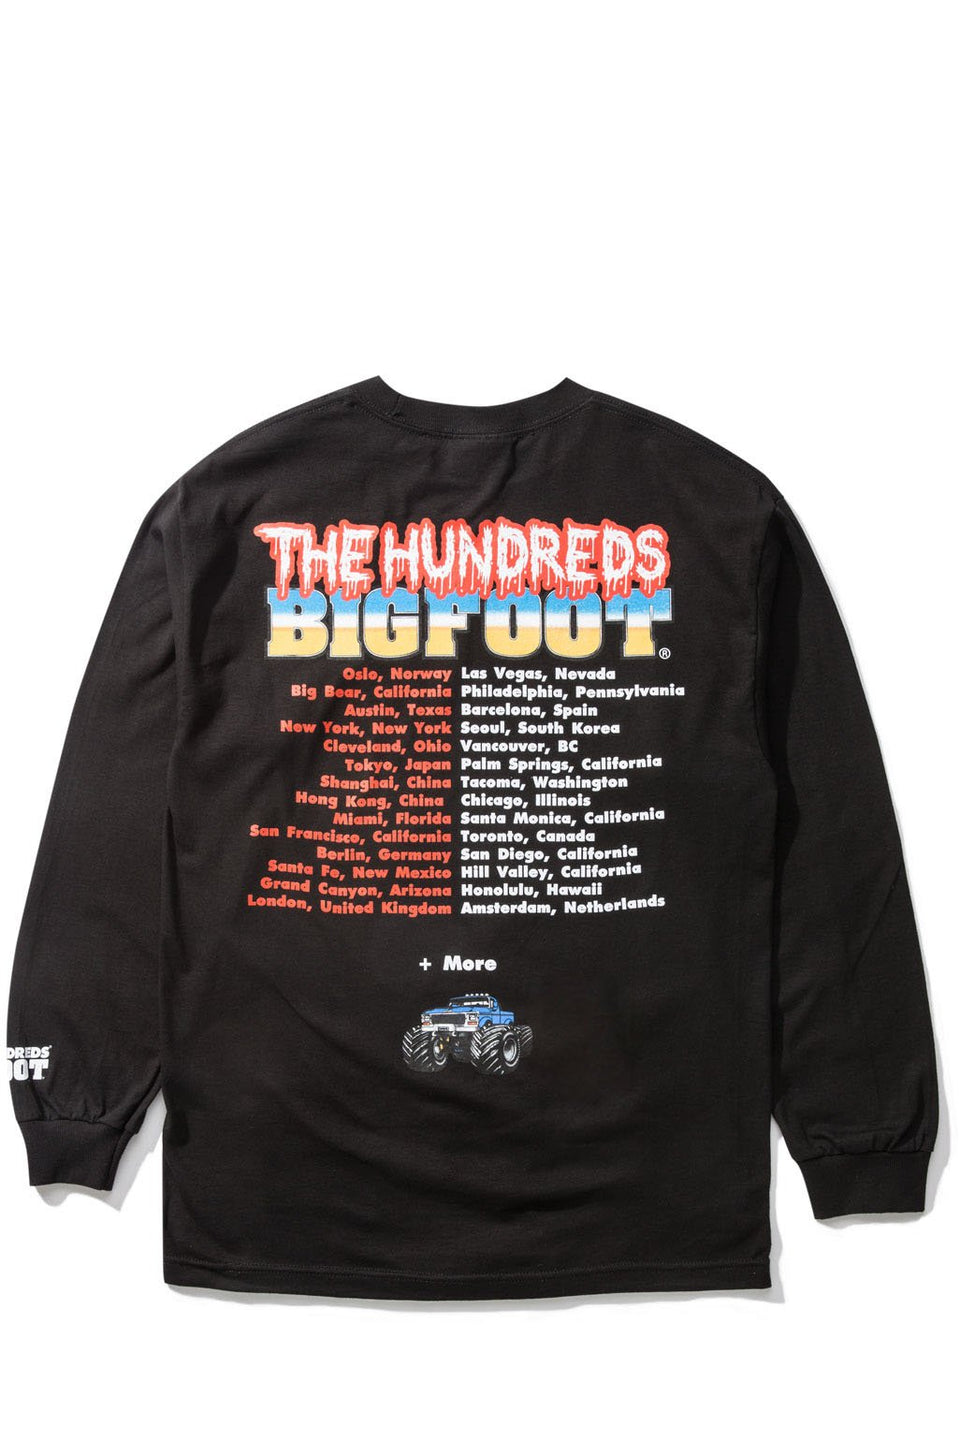 Thousands L/S Shirt